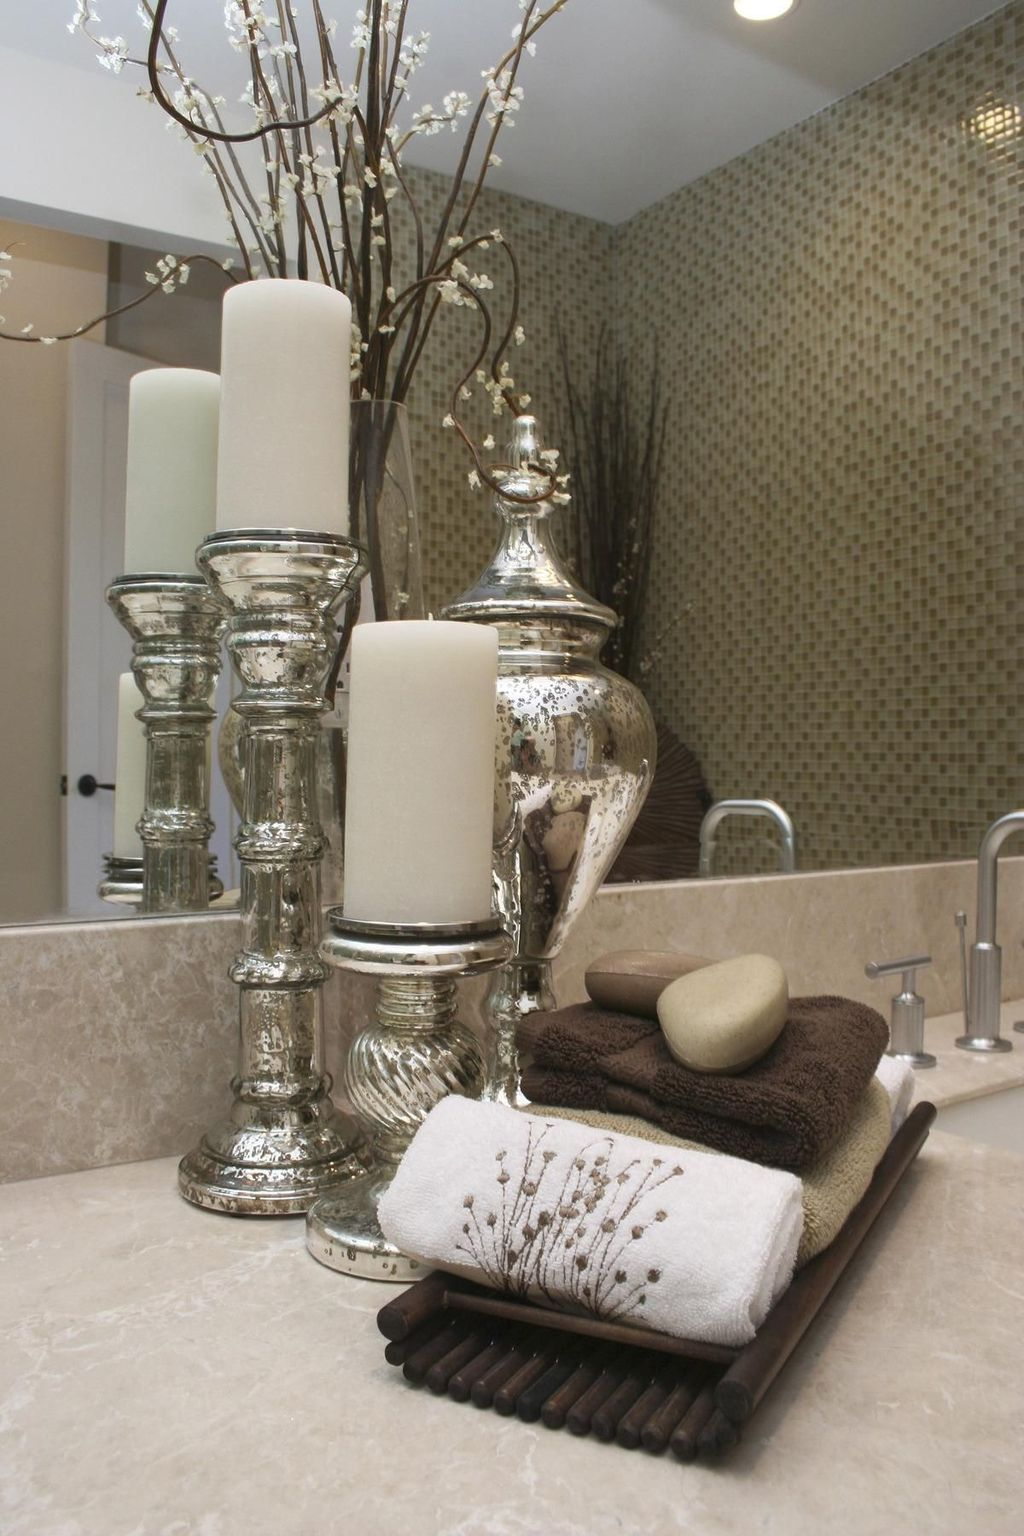 Stunning Winter Bathroom Decor Ideas 32